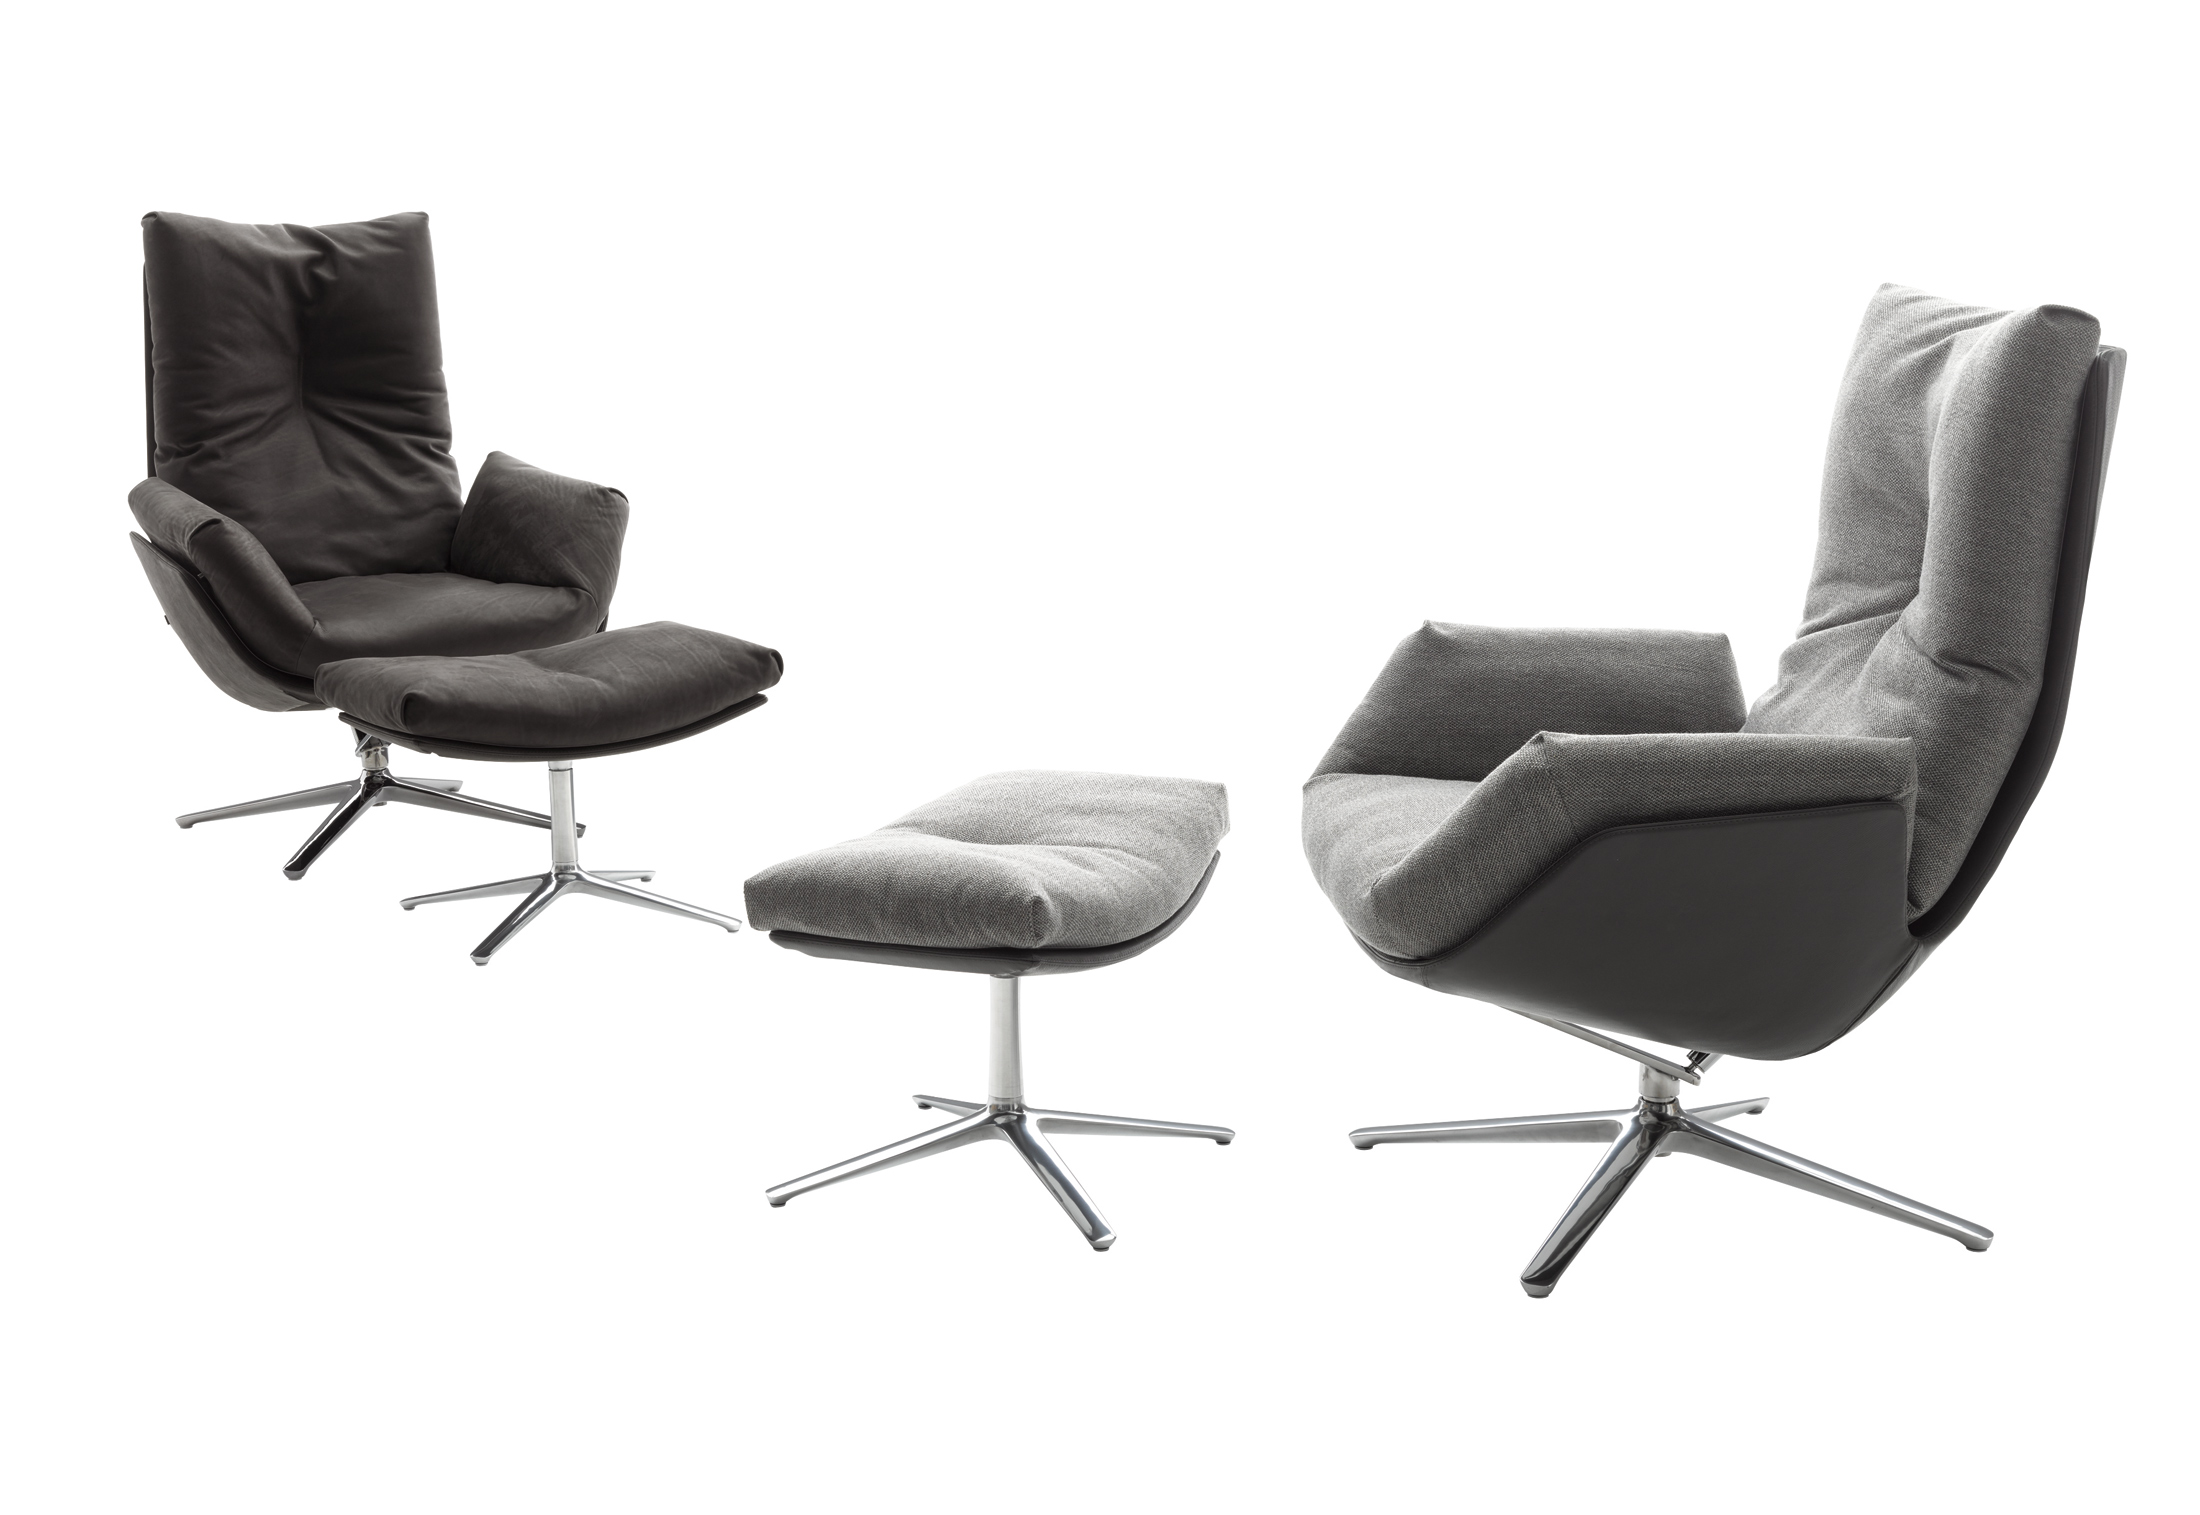 Cordia Lounge Chairs by Jehs + Laub for COR